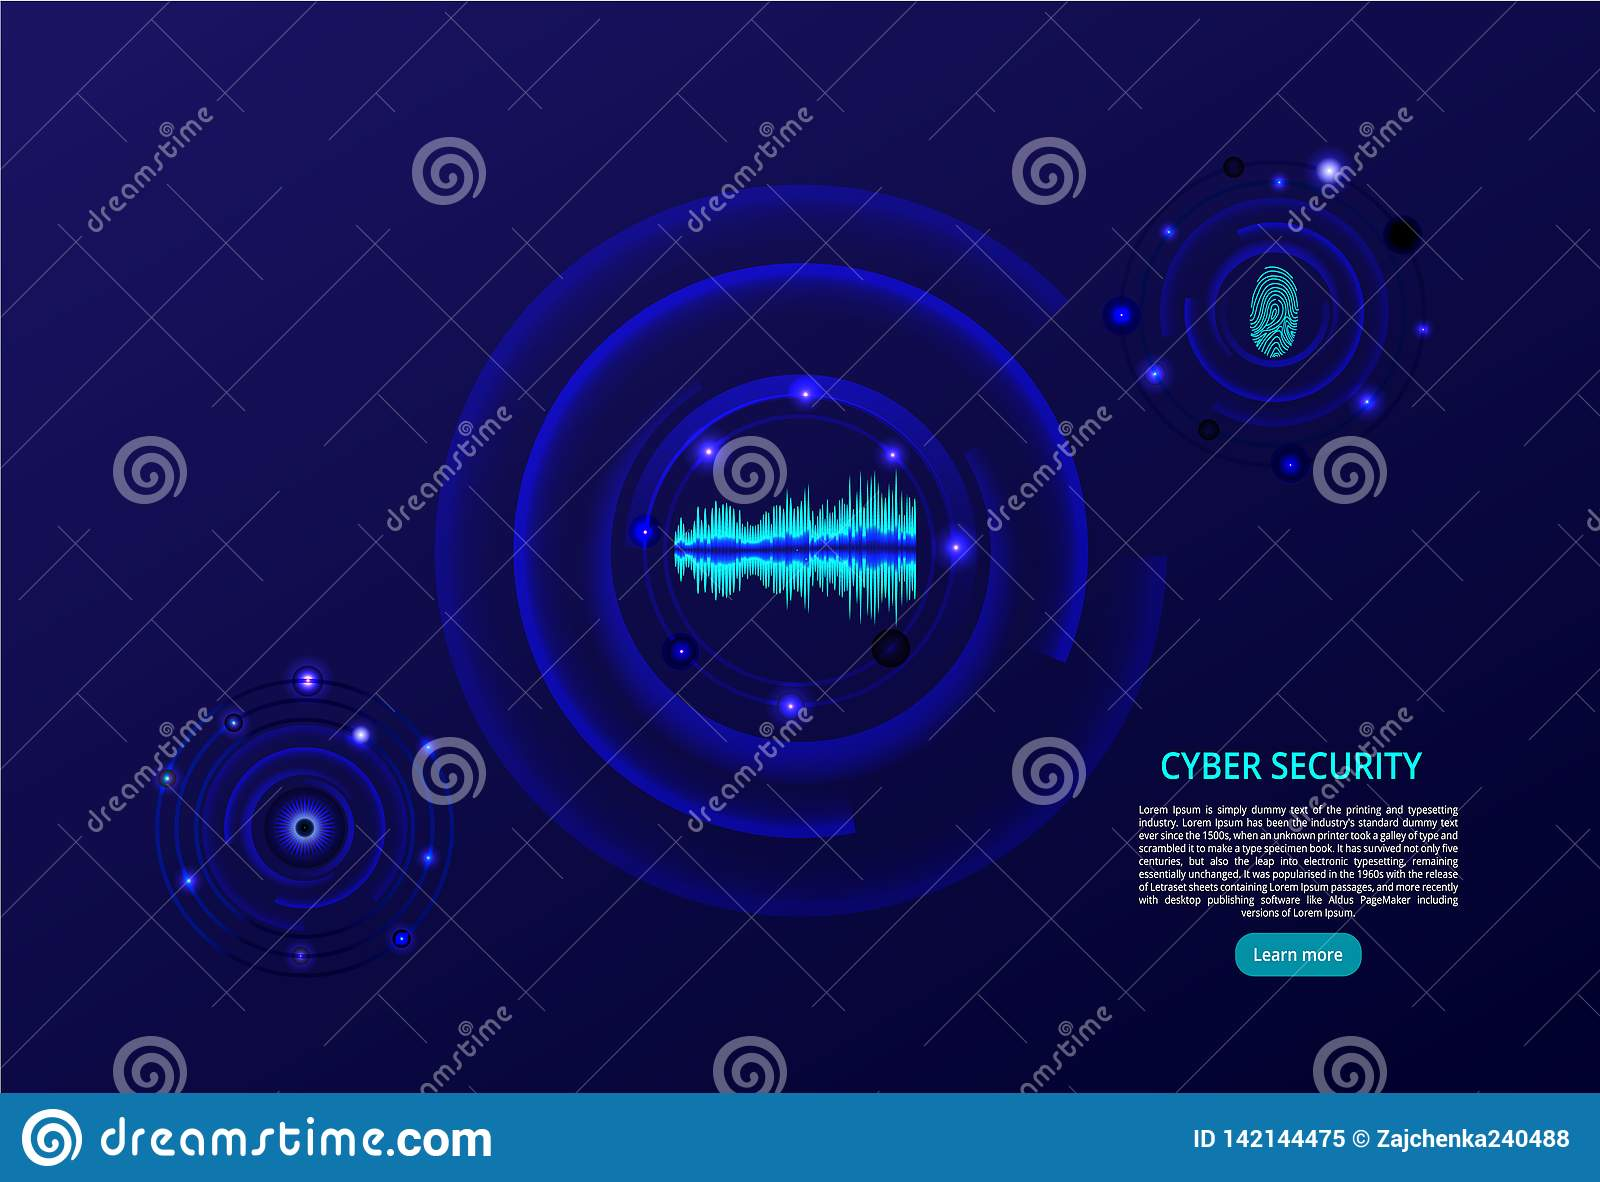 Abstract technology background. The concept of cybersecurity. Fingerprint, eye and voice scan - vector illustration.